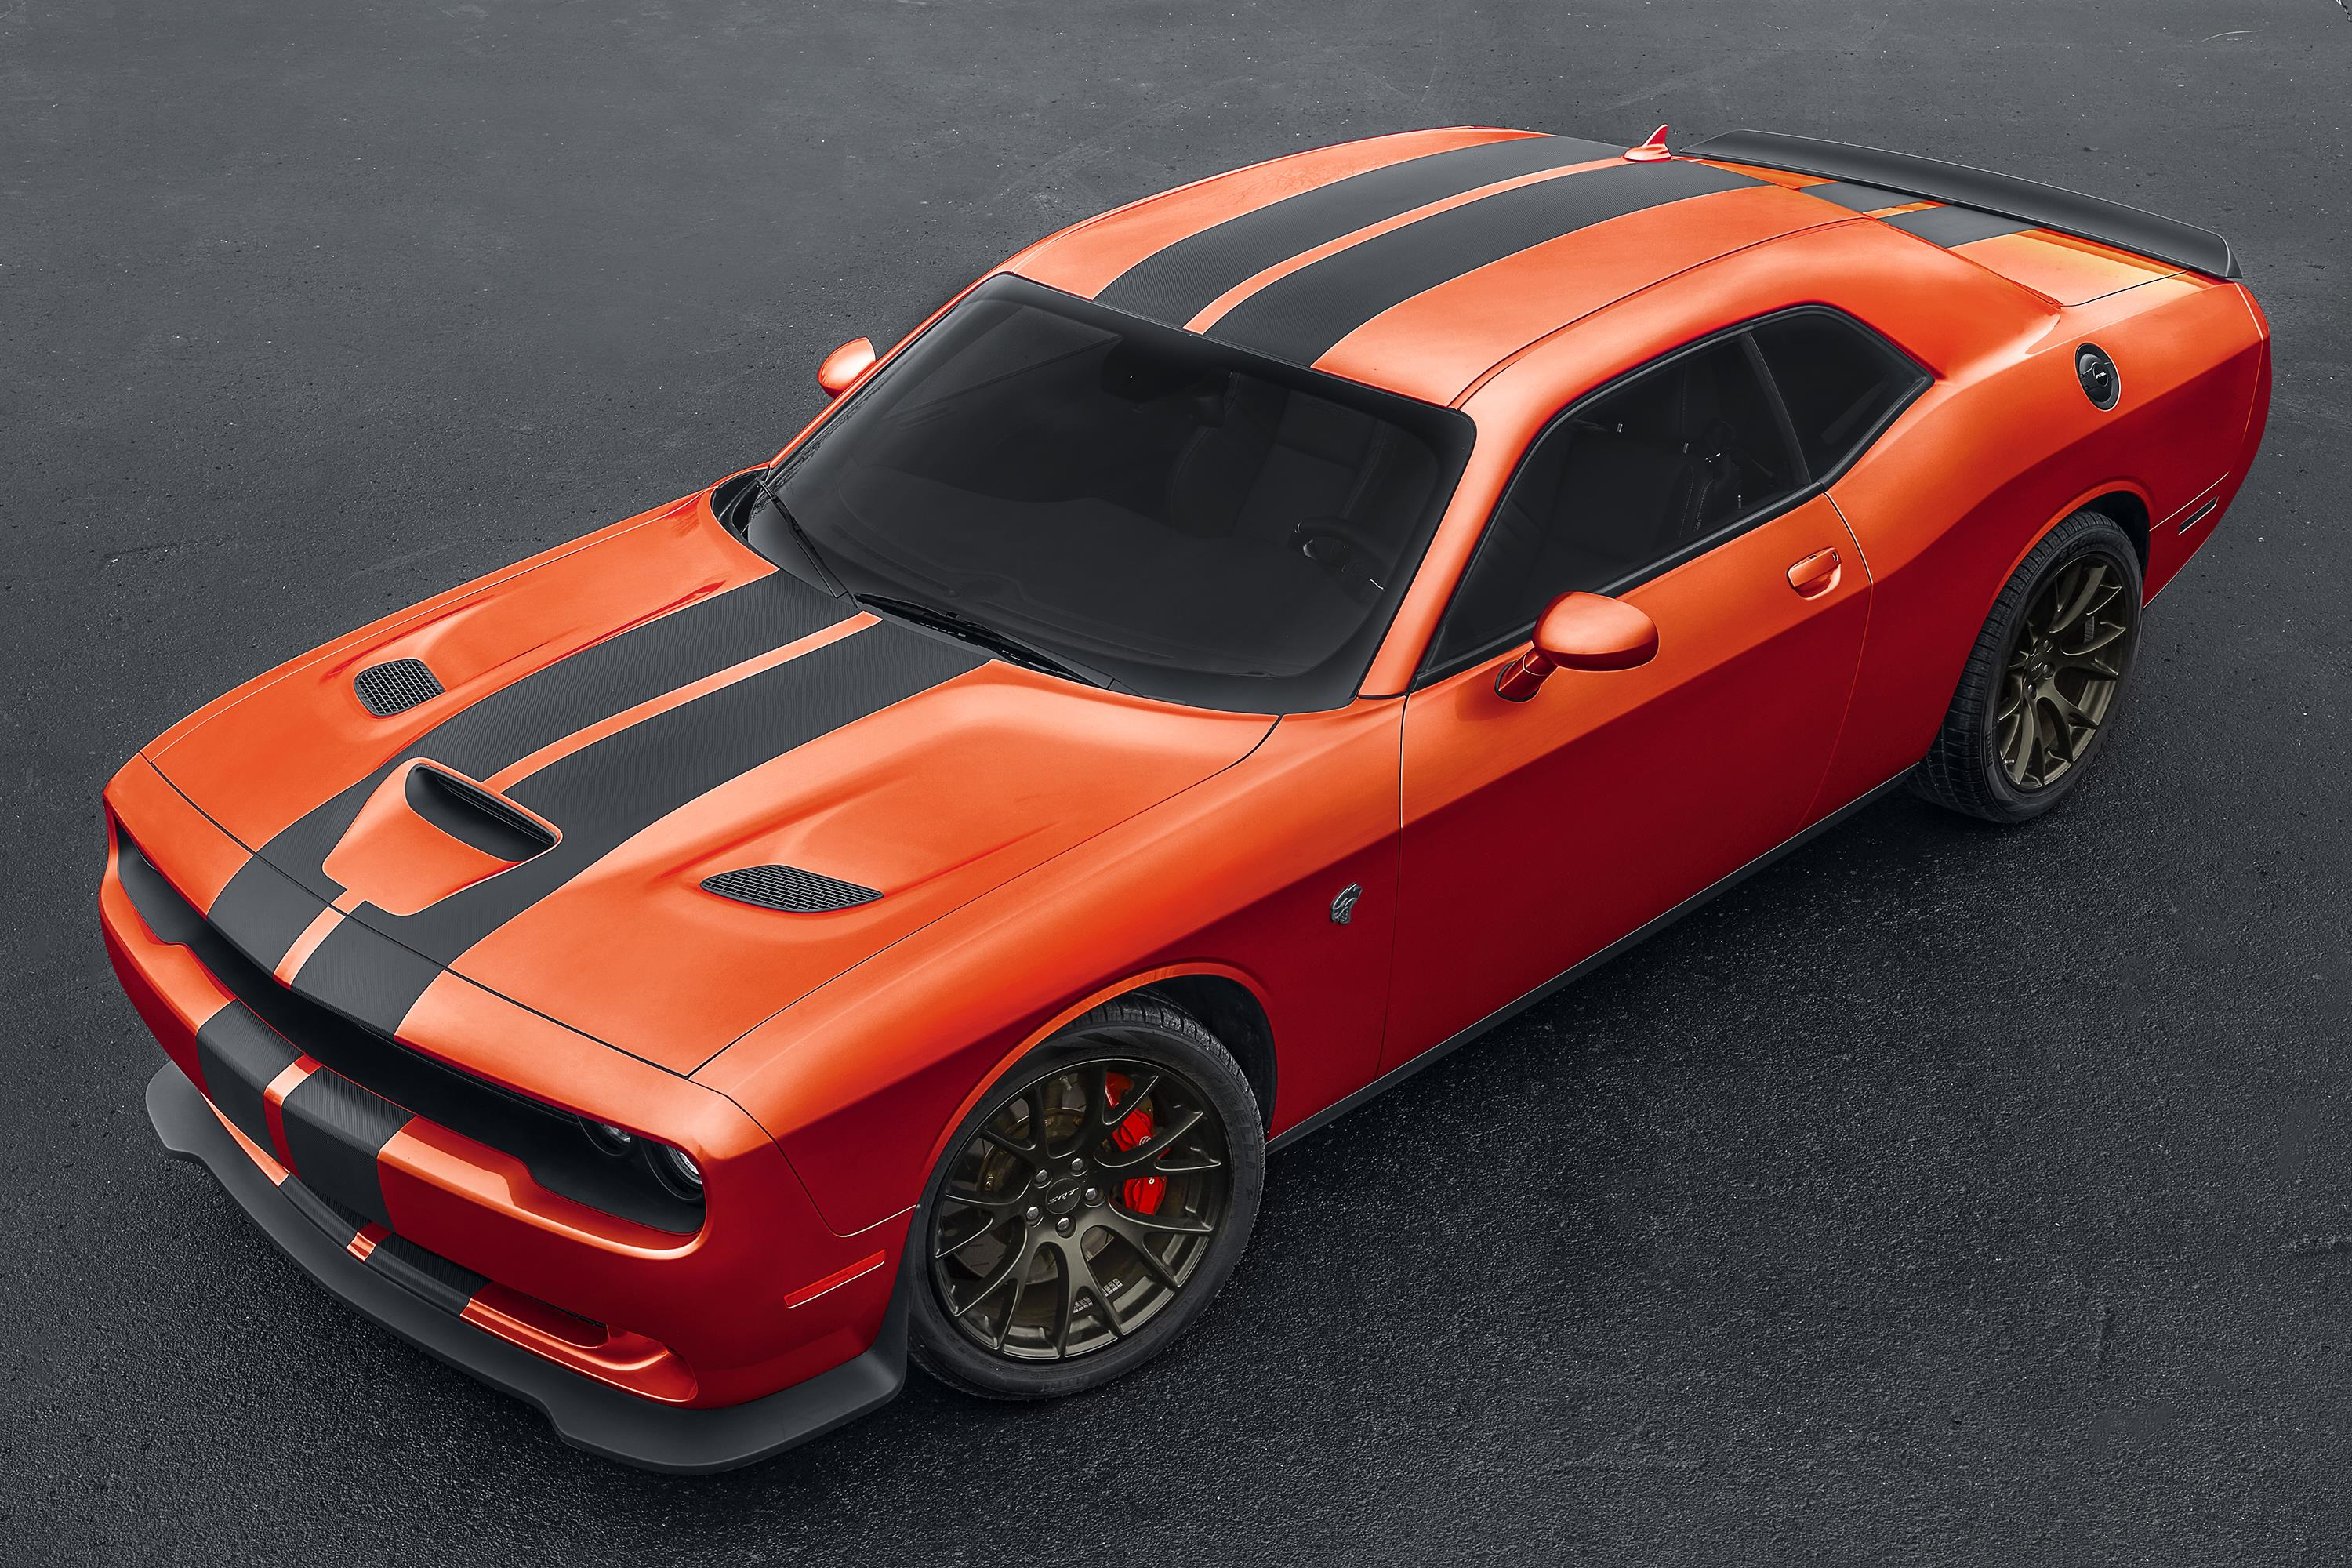 2017 dodge challenger srt. Black Bedroom Furniture Sets. Home Design Ideas